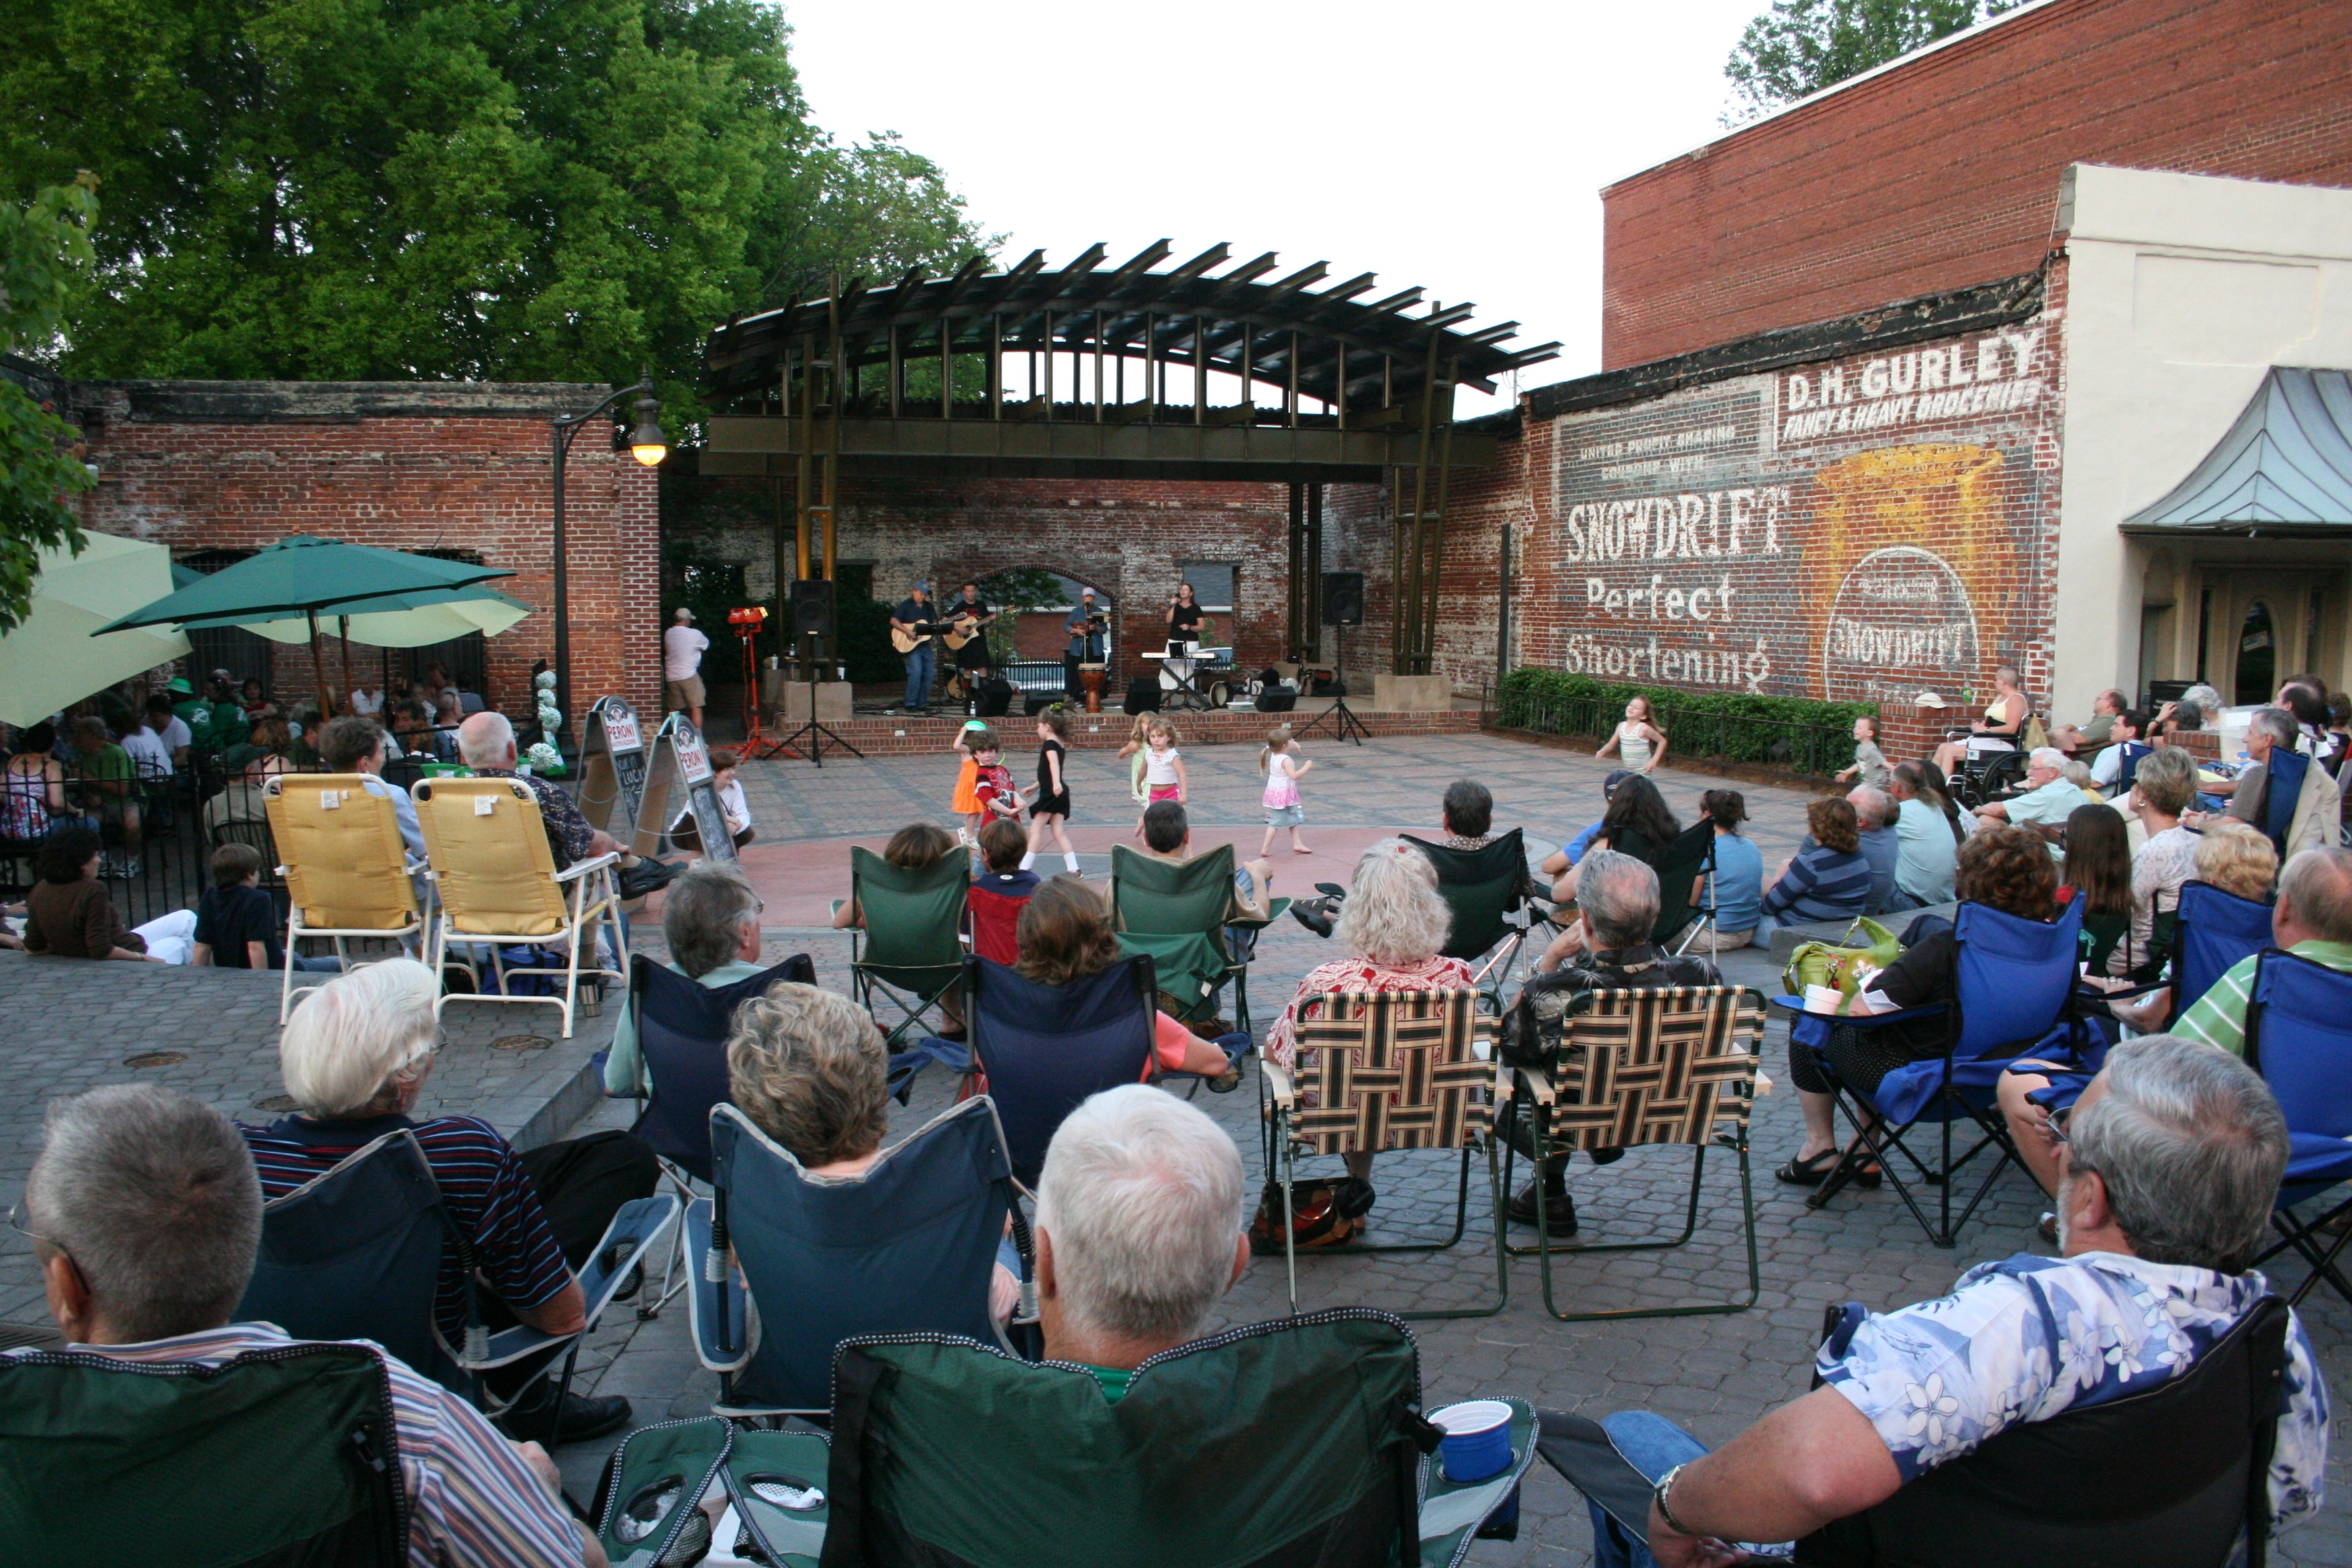 All ages enjoy a concert in O'Neal Plaza, a gathering place among historic buildings and advertisements in Douglasville, Georgia